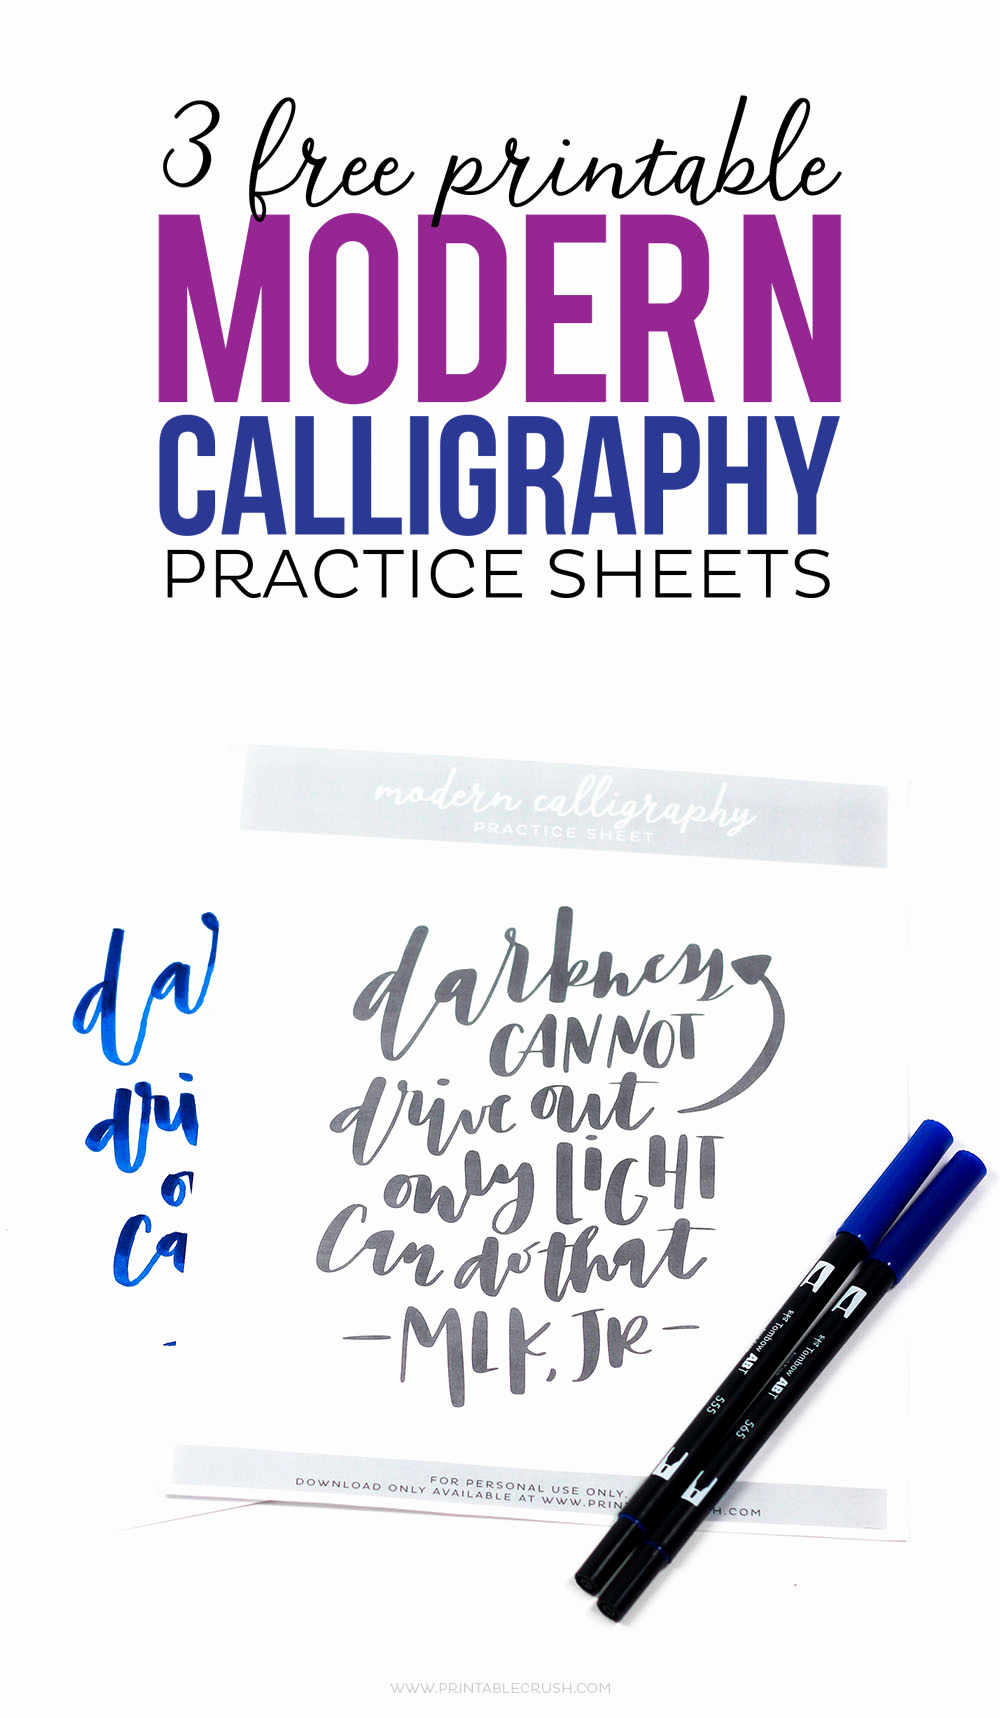 Free Calligraphy Worksheets Printable Awesome 3 Free Printable Modern Calligraphy Practice Sheets